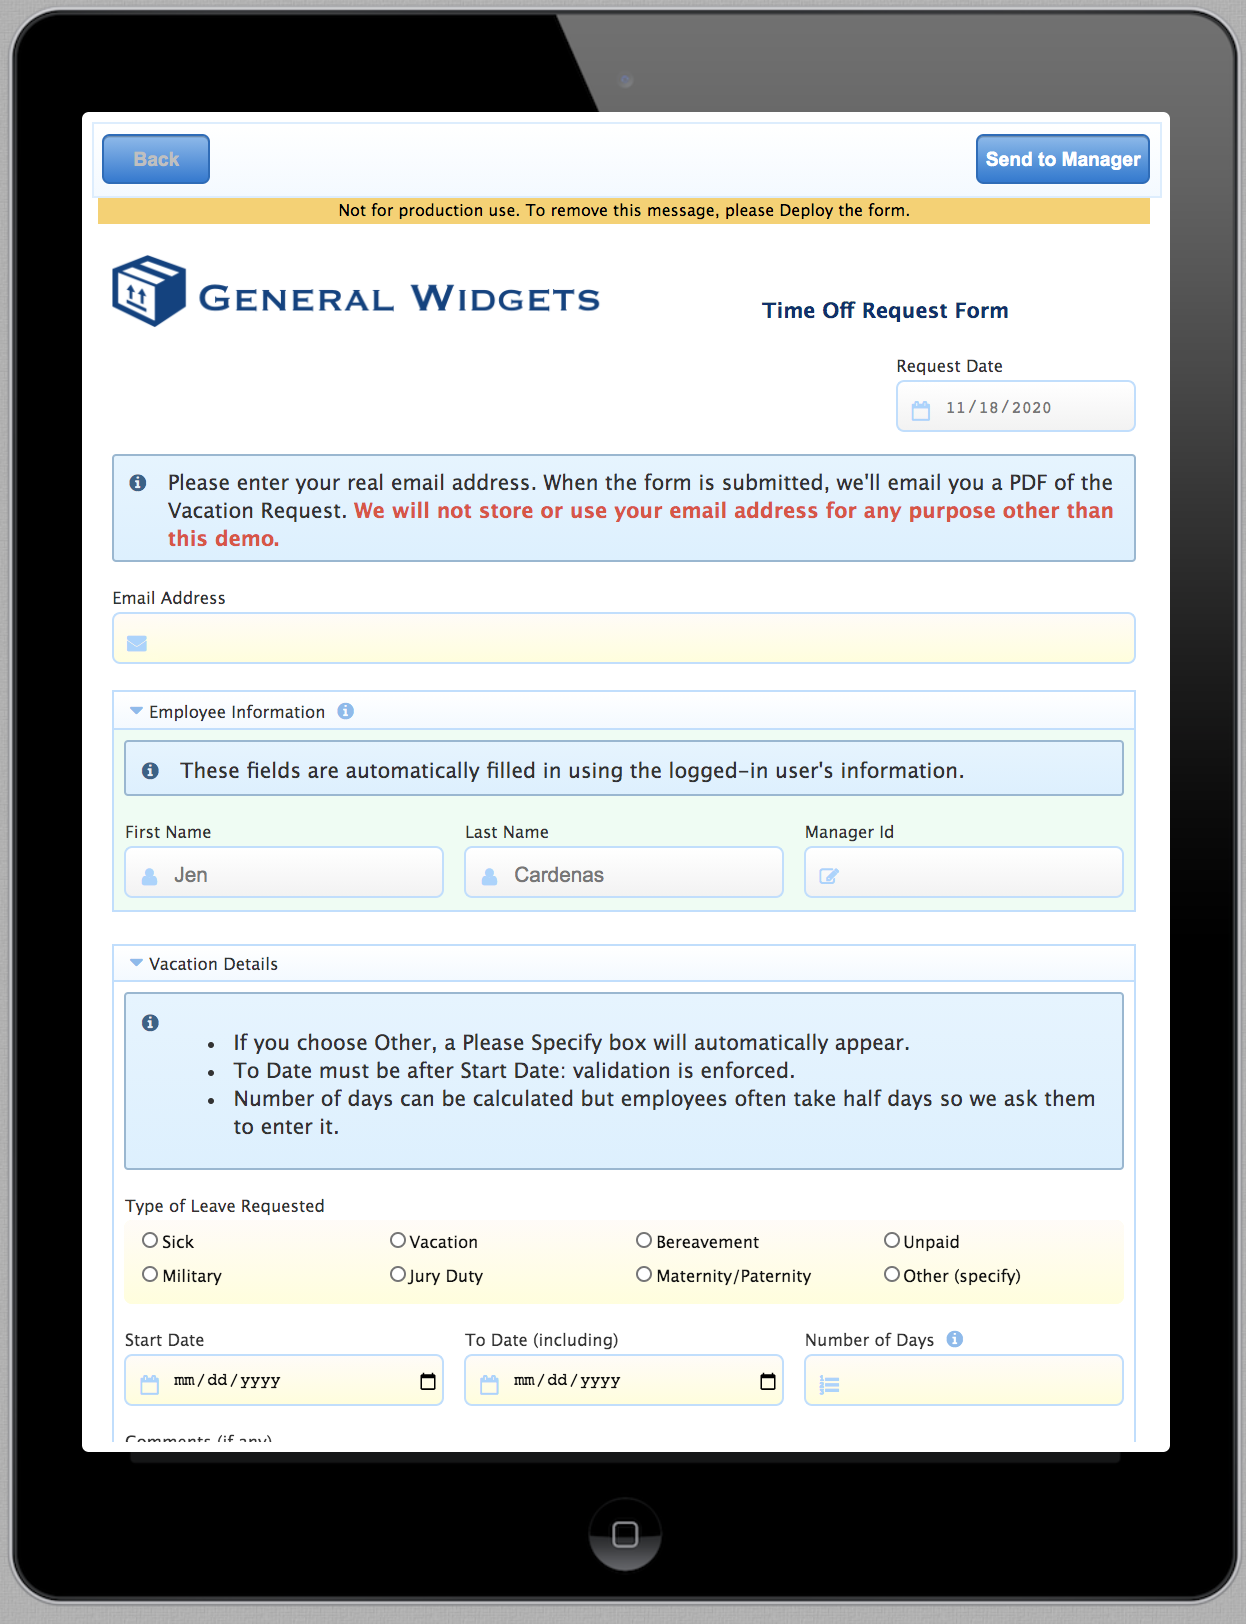 Testing an electronic signature workflow on mobile devices